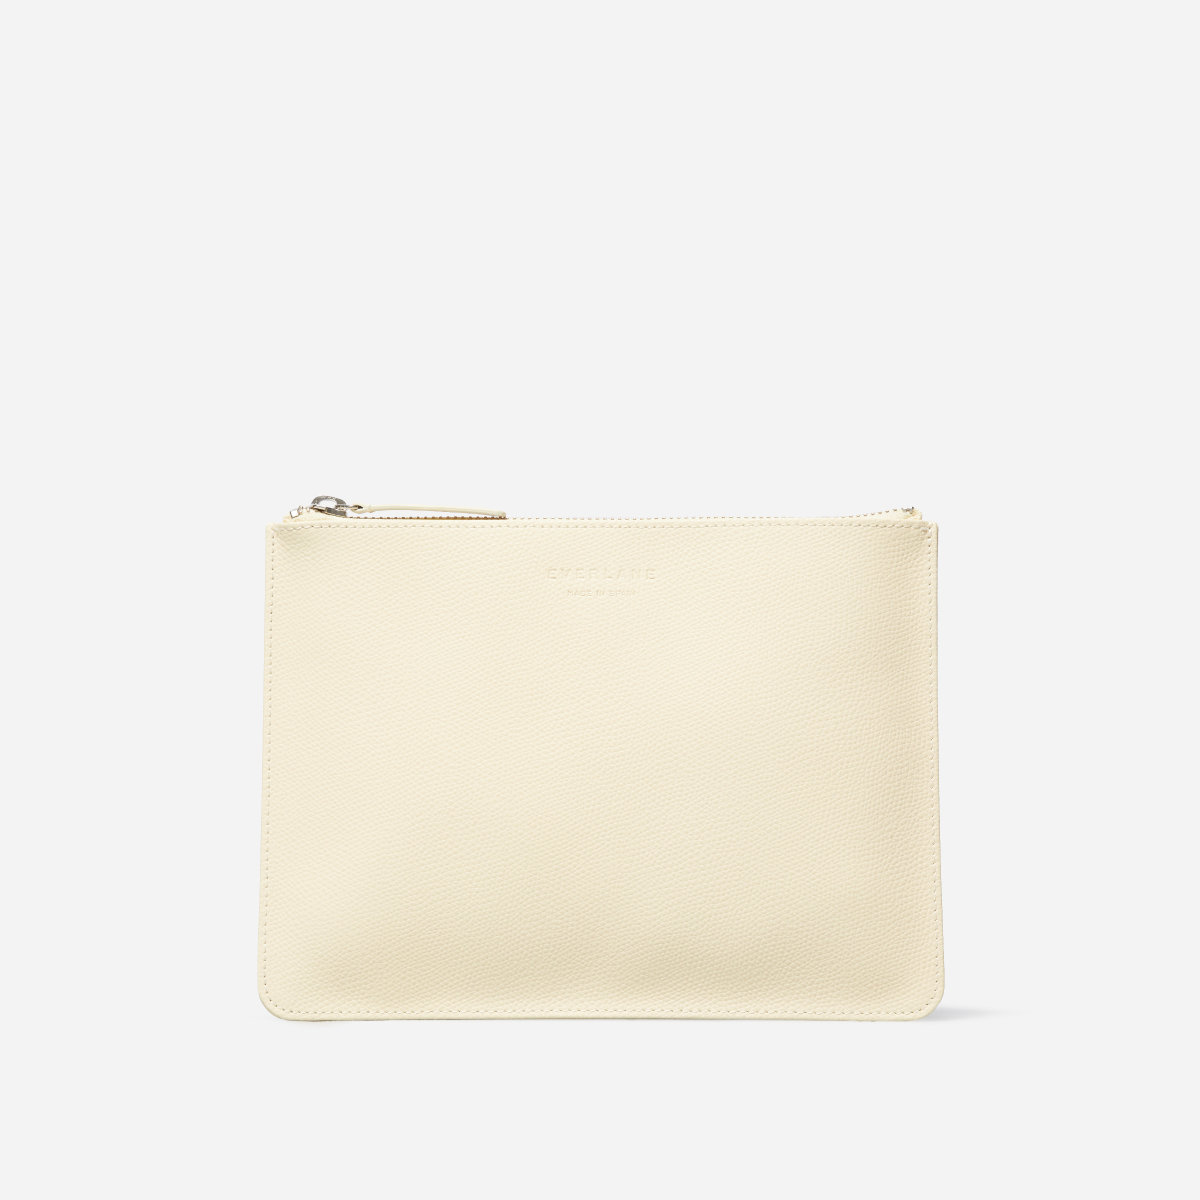 ALL-SORTS-OF-EVERLANE-POUCH